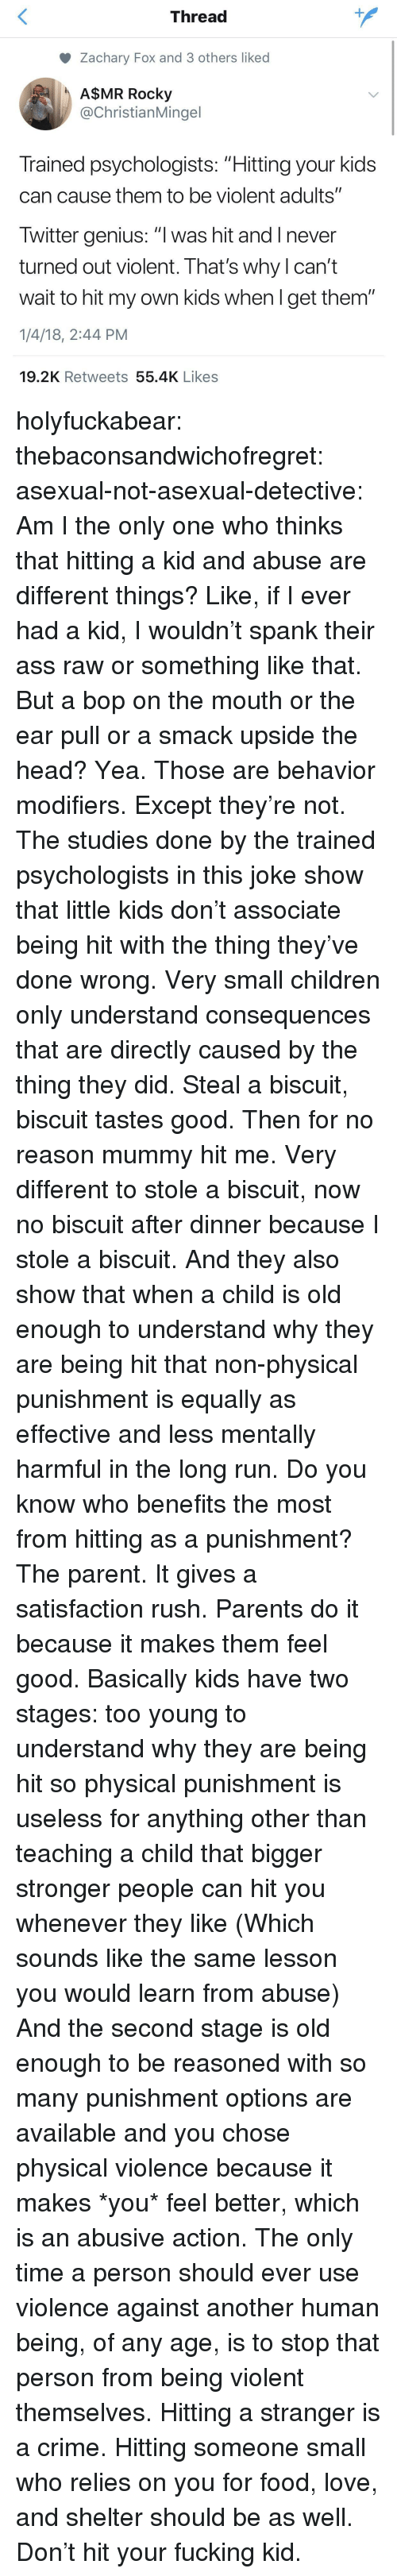 """Am I the Only One: Thread  Zachary Fox and 3 others liked  A$MR Rocky  @ChristianMingel  Trained psychologists: """"Hitting your kids  can cause them to be violent adults""""  Twitter genius: """"l was hit and I never  turned out violent. That's why l can't  wait to hit my own kids when l get them""""  1/4/18, 2:44 PM  19.2K Retweets 55.4K Likes holyfuckabear: thebaconsandwichofregret:  asexual-not-asexual-detective:  Am I the only one who thinks that hitting a kid and abuse are different things? Like, if I ever had a kid, I wouldn't spank their ass raw or something like that. But a bop on the mouth or the ear pull or a smack upside the head? Yea. Those are behavior modifiers.   Except they're not.  The studies done by the trained psychologists in this joke show that little kids don't associate being hit with the thing they've done wrong. Very small children only understand consequences that are directly caused by the thing they did. Steal a biscuit, biscuit tastes good. Then for no reason mummy hit me. Very different to stole a biscuit, now no biscuit after dinner because I stole a biscuit. And they also show that when a child is old enough to understand why they are being hit that non-physical punishment is equally as effective and less mentally harmful in the long run.  Do you know who benefits the most from hitting as a punishment? The parent. It gives a satisfaction rush. Parents do it because it makes them feel good.  Basically kids have two stages: too young to understand why they are being hit so physical punishment is useless for anything other than teaching a child that bigger stronger people can hit you whenever they like (Which sounds like the same lesson you would learn from abuse) And the second stage is old enough to be reasoned with so many punishment options are available and you chose physical violence because it makes *you* feel better, which is an abusive action.  The only time a person should ever use violence against another human being, of any age, is to """